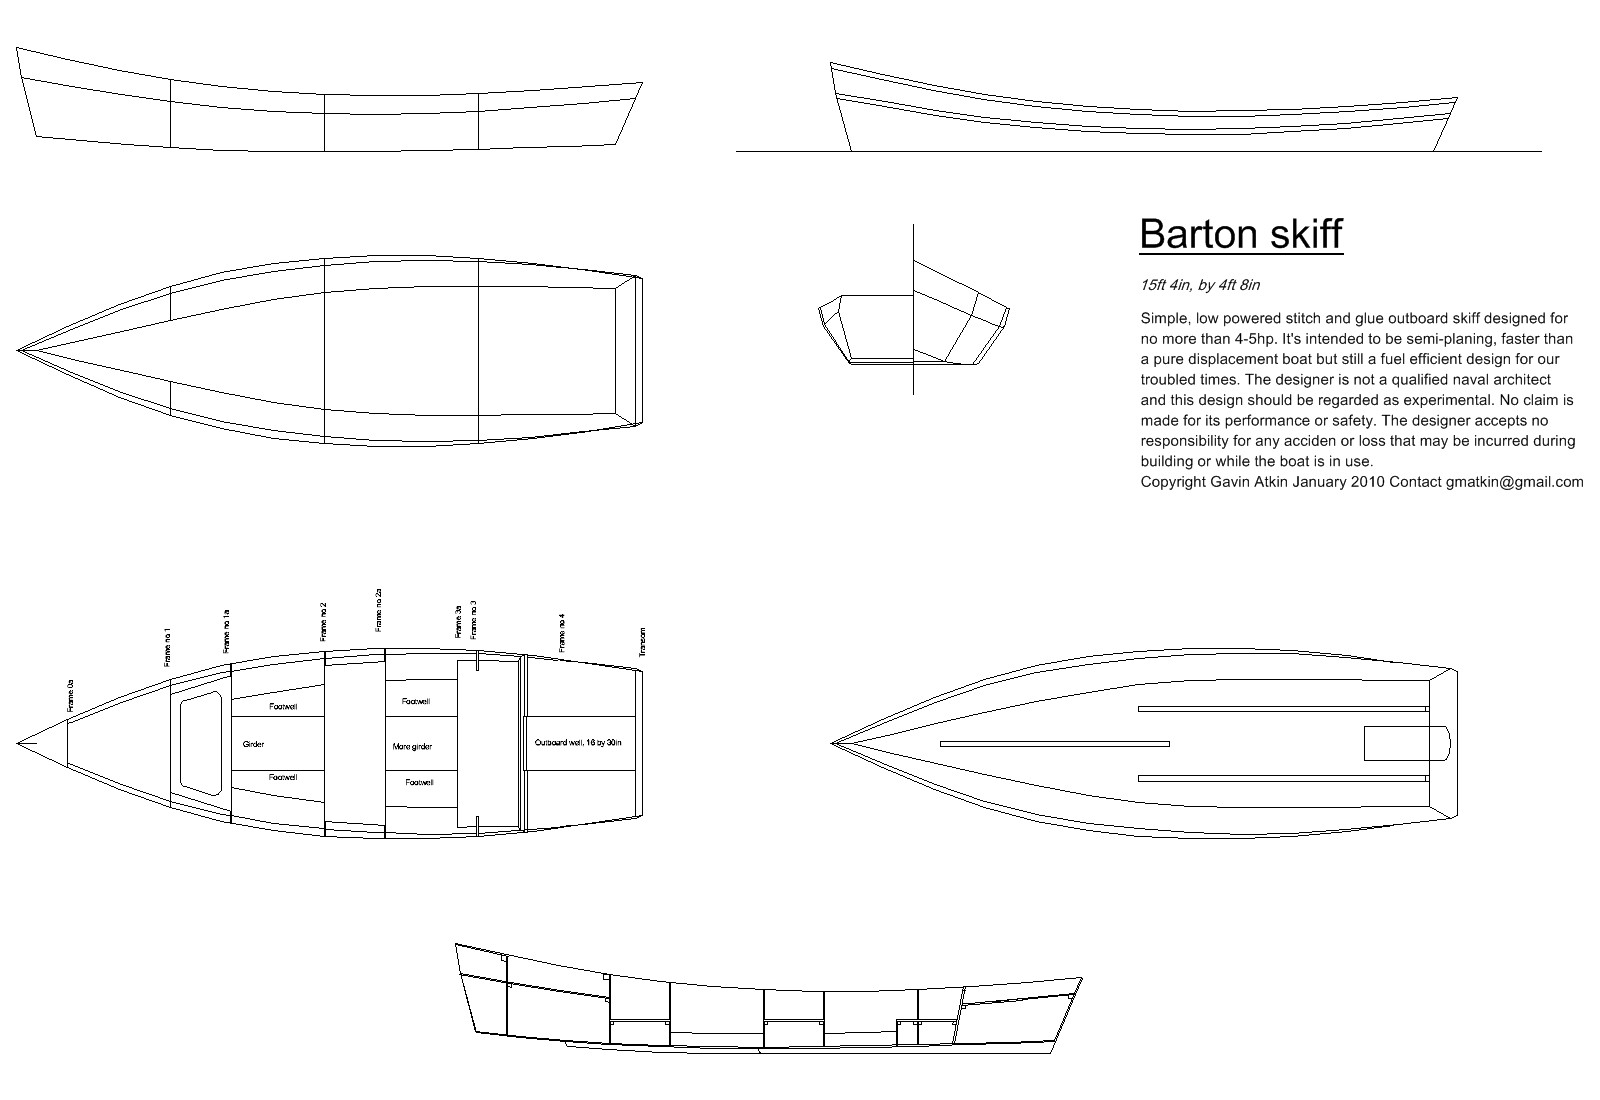 At last – construction drawings for the Barton skiff ...